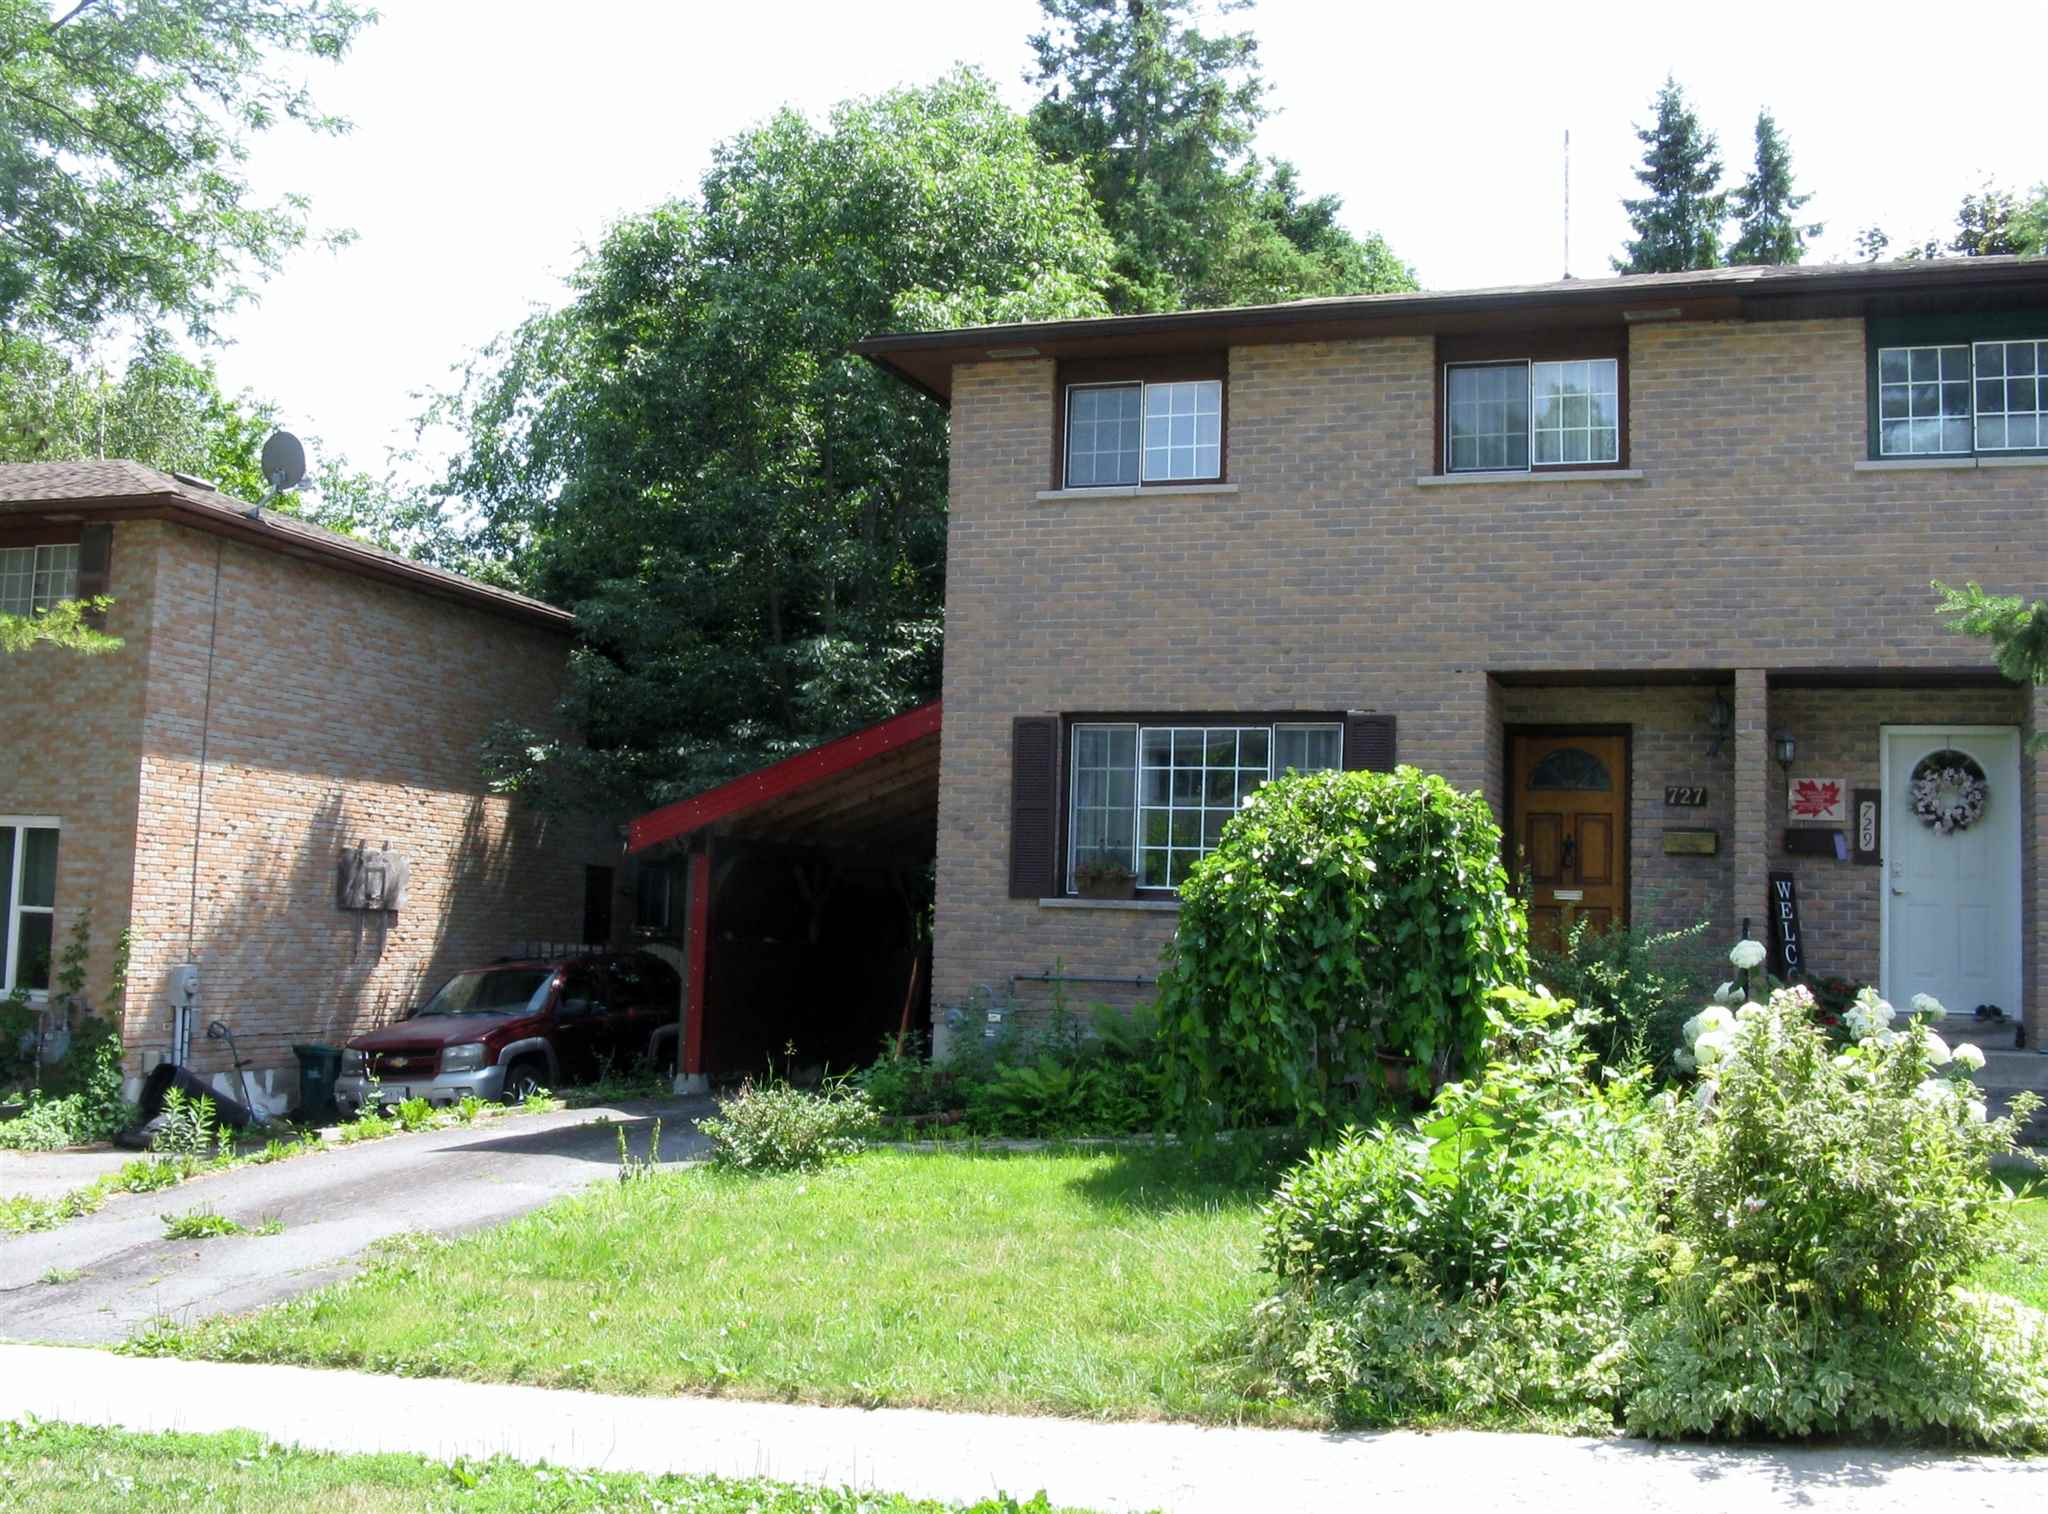 727 Grouse Crescent, Kingston Ontario, Canada